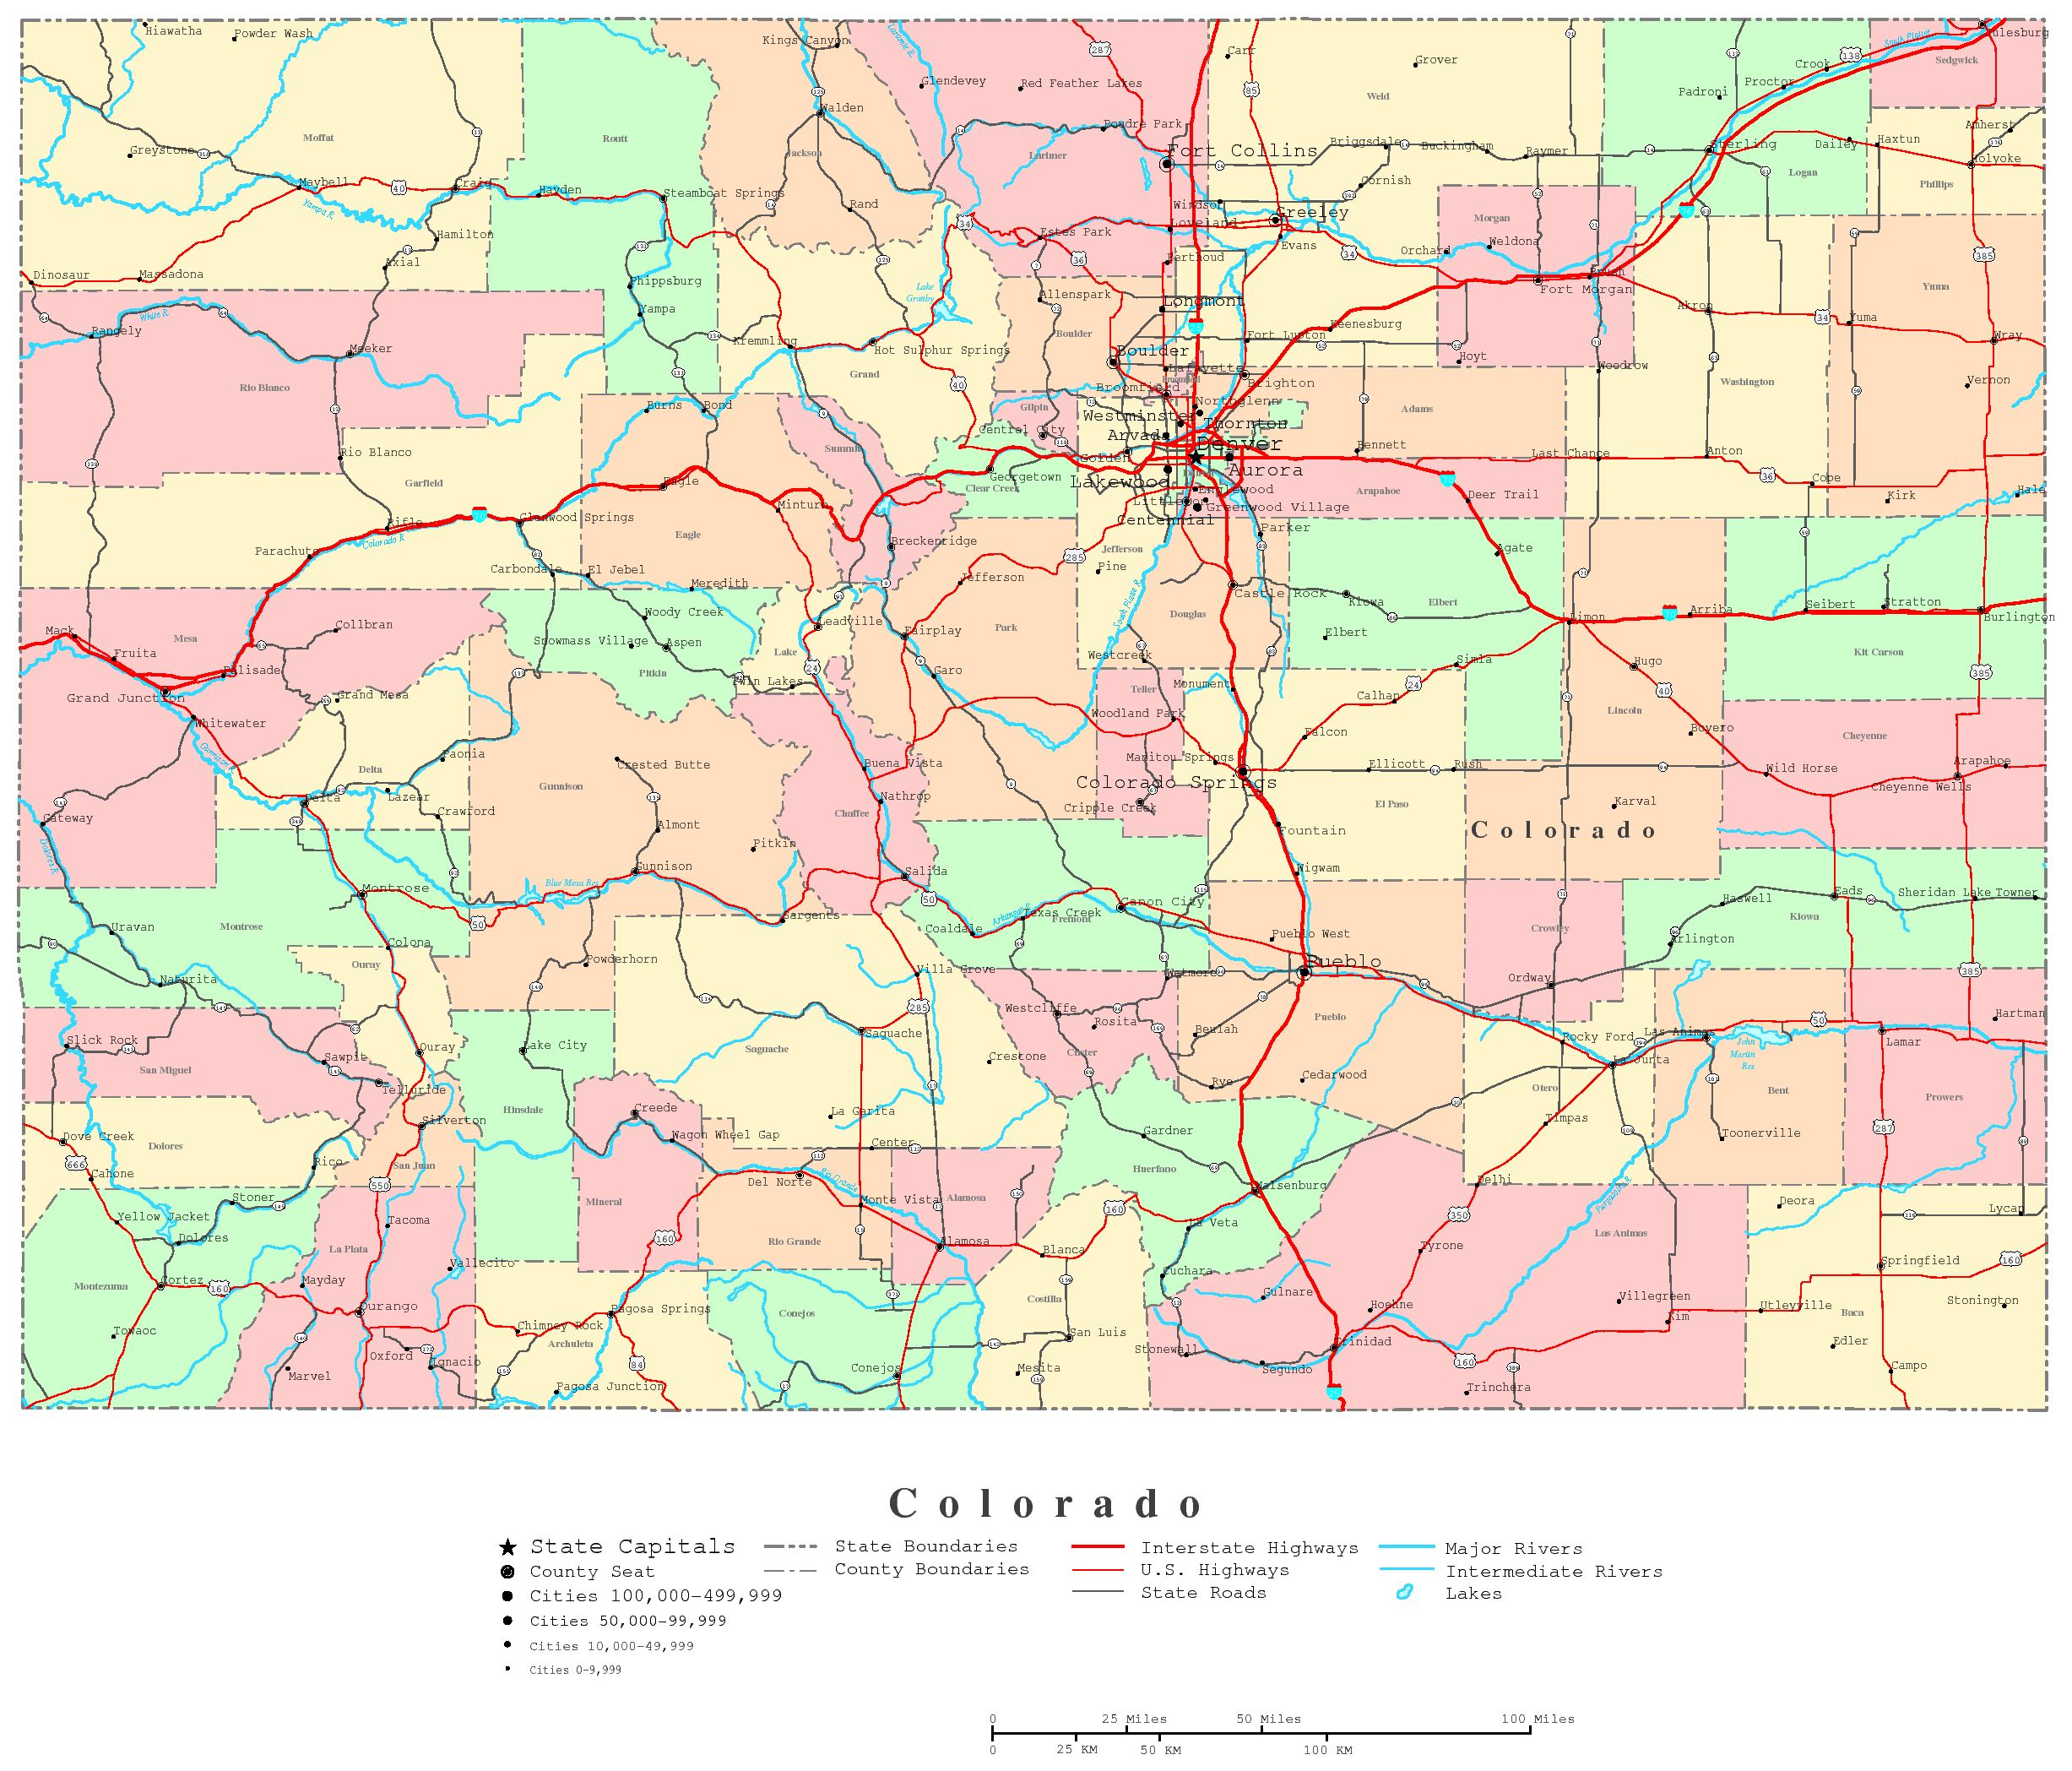 Colorado Printable Map - State map of colorado with cities